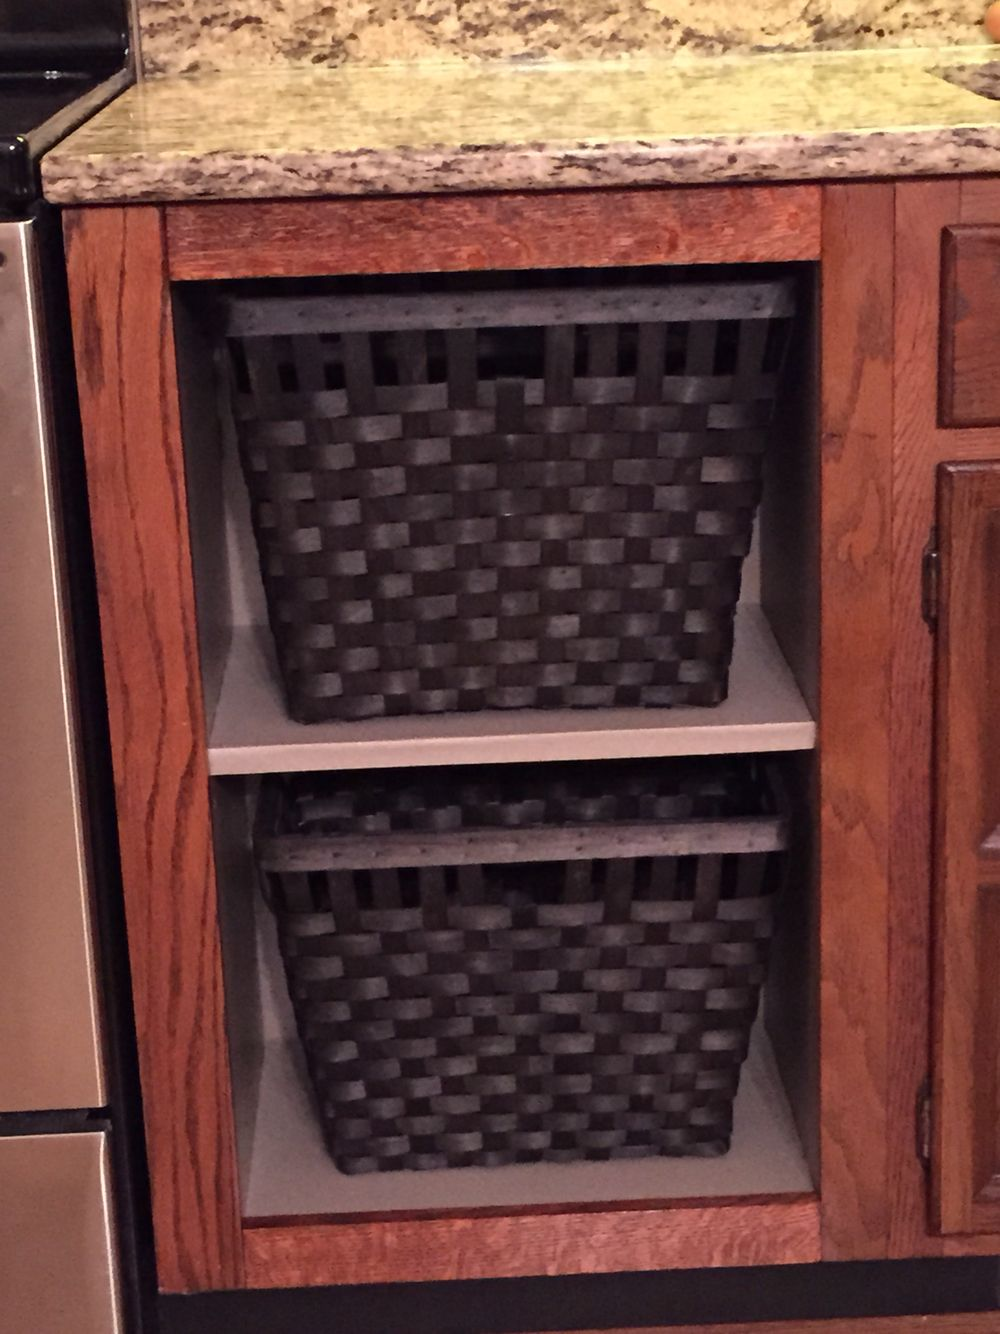 Trash compactor replacement. IKEA hack with stained trim to match ...